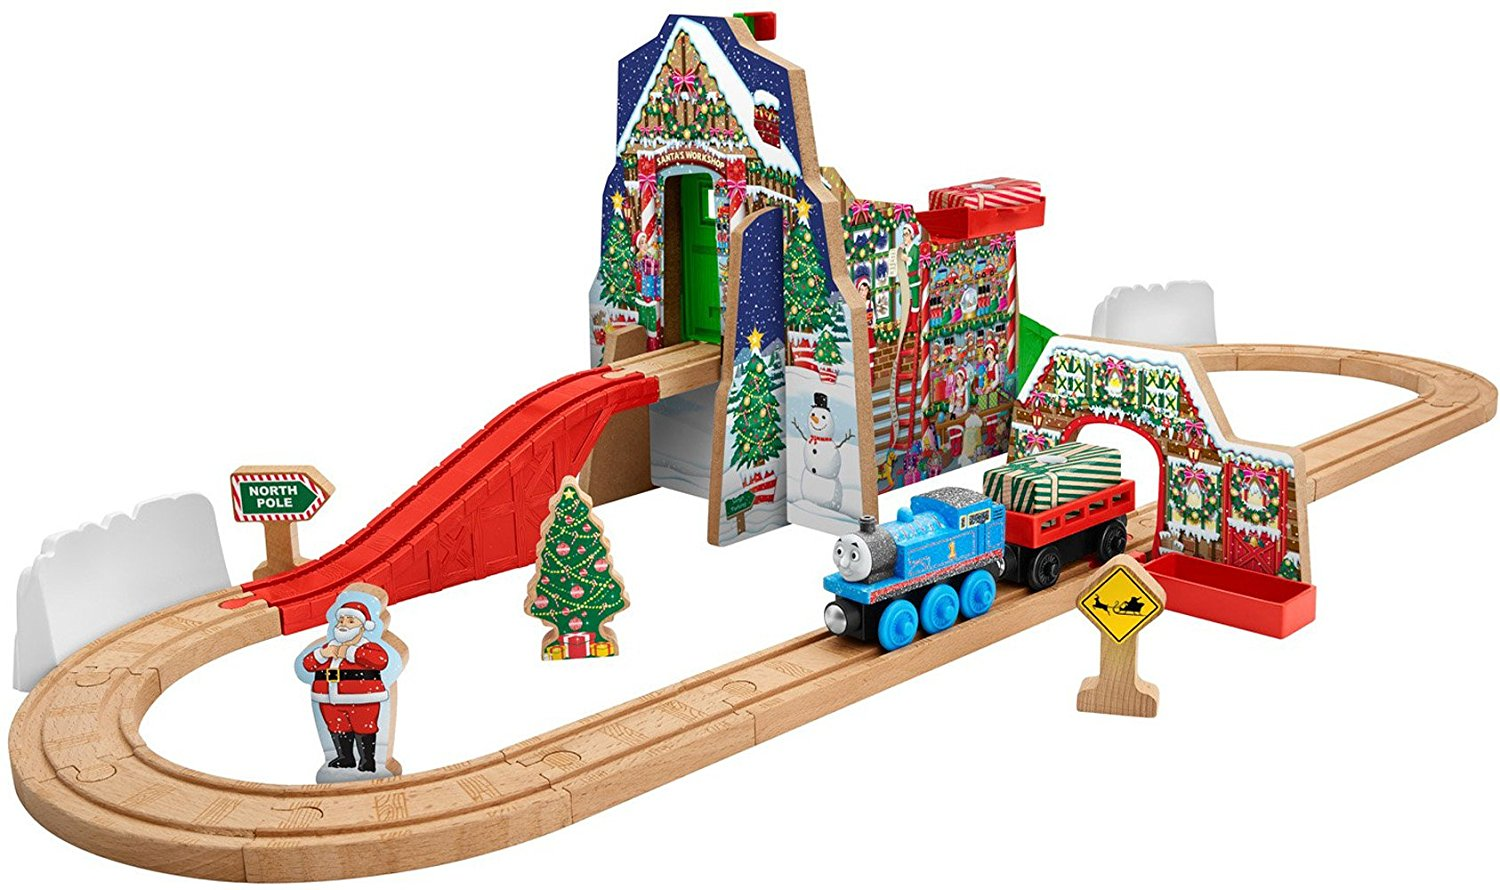 Santa\'s Workshop Express | Thomas Wood Wiki | FANDOM powered by Wikia